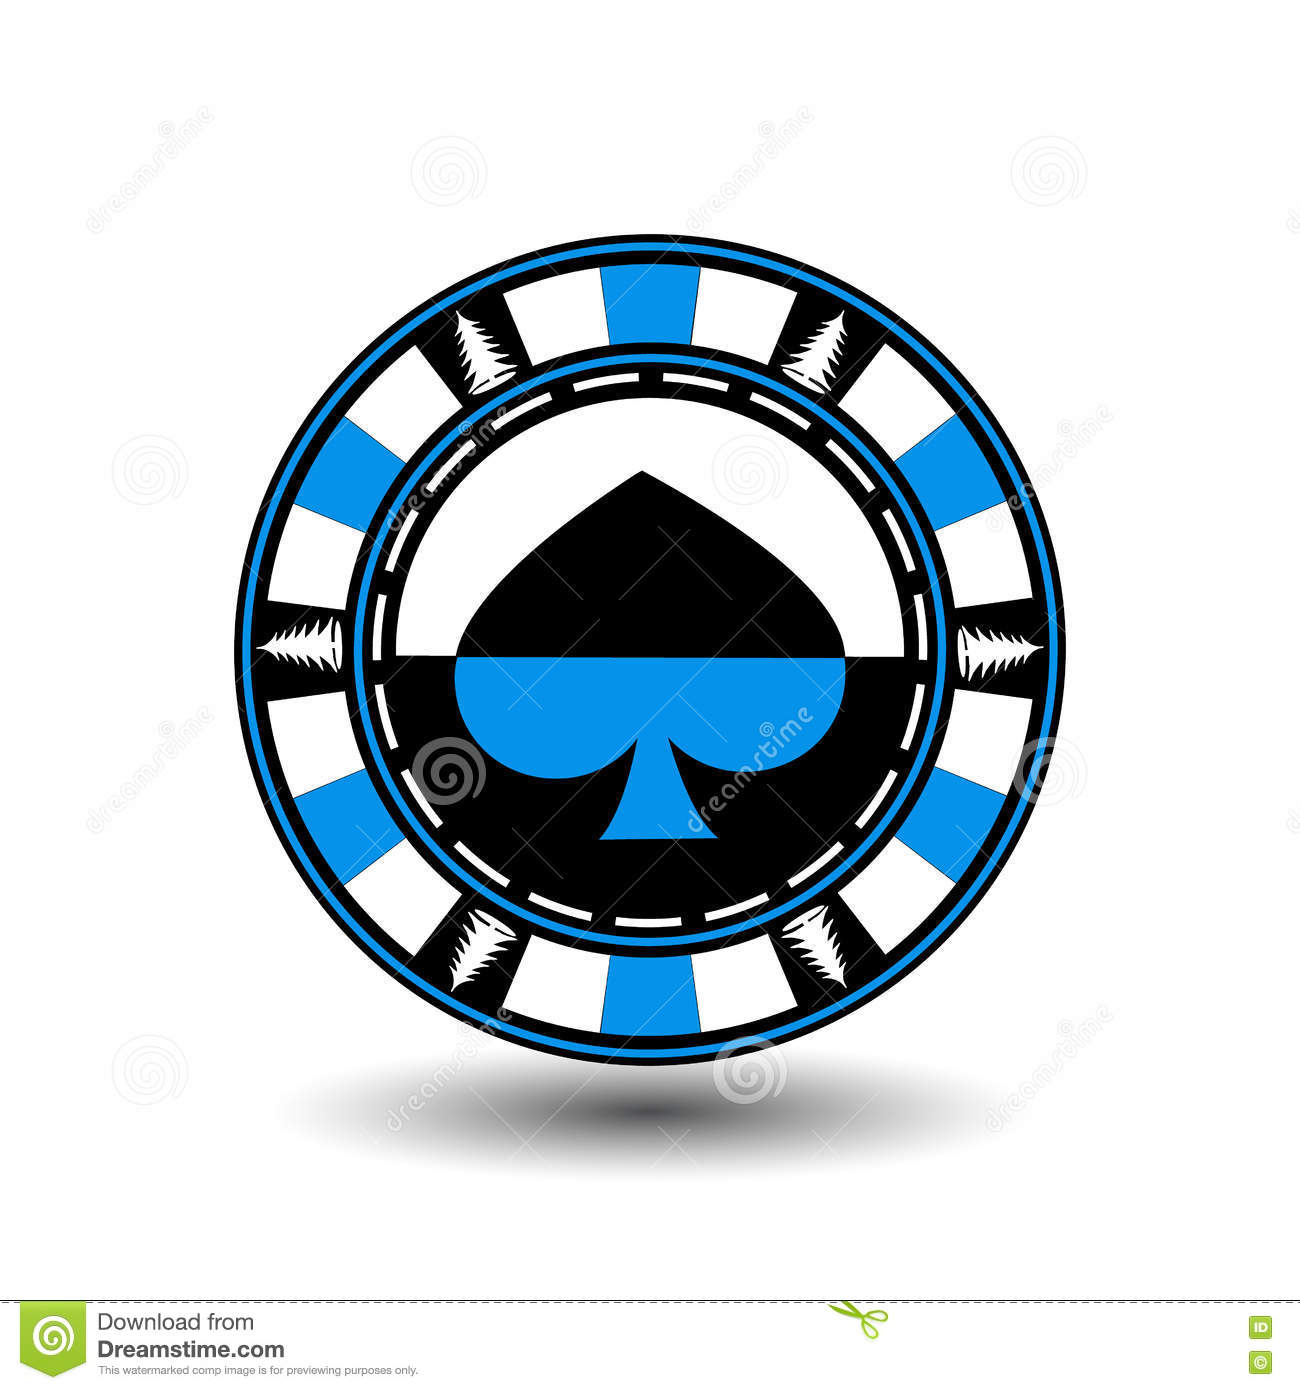 Poker Chip Christmas  Blue  With The Spade Suit In The